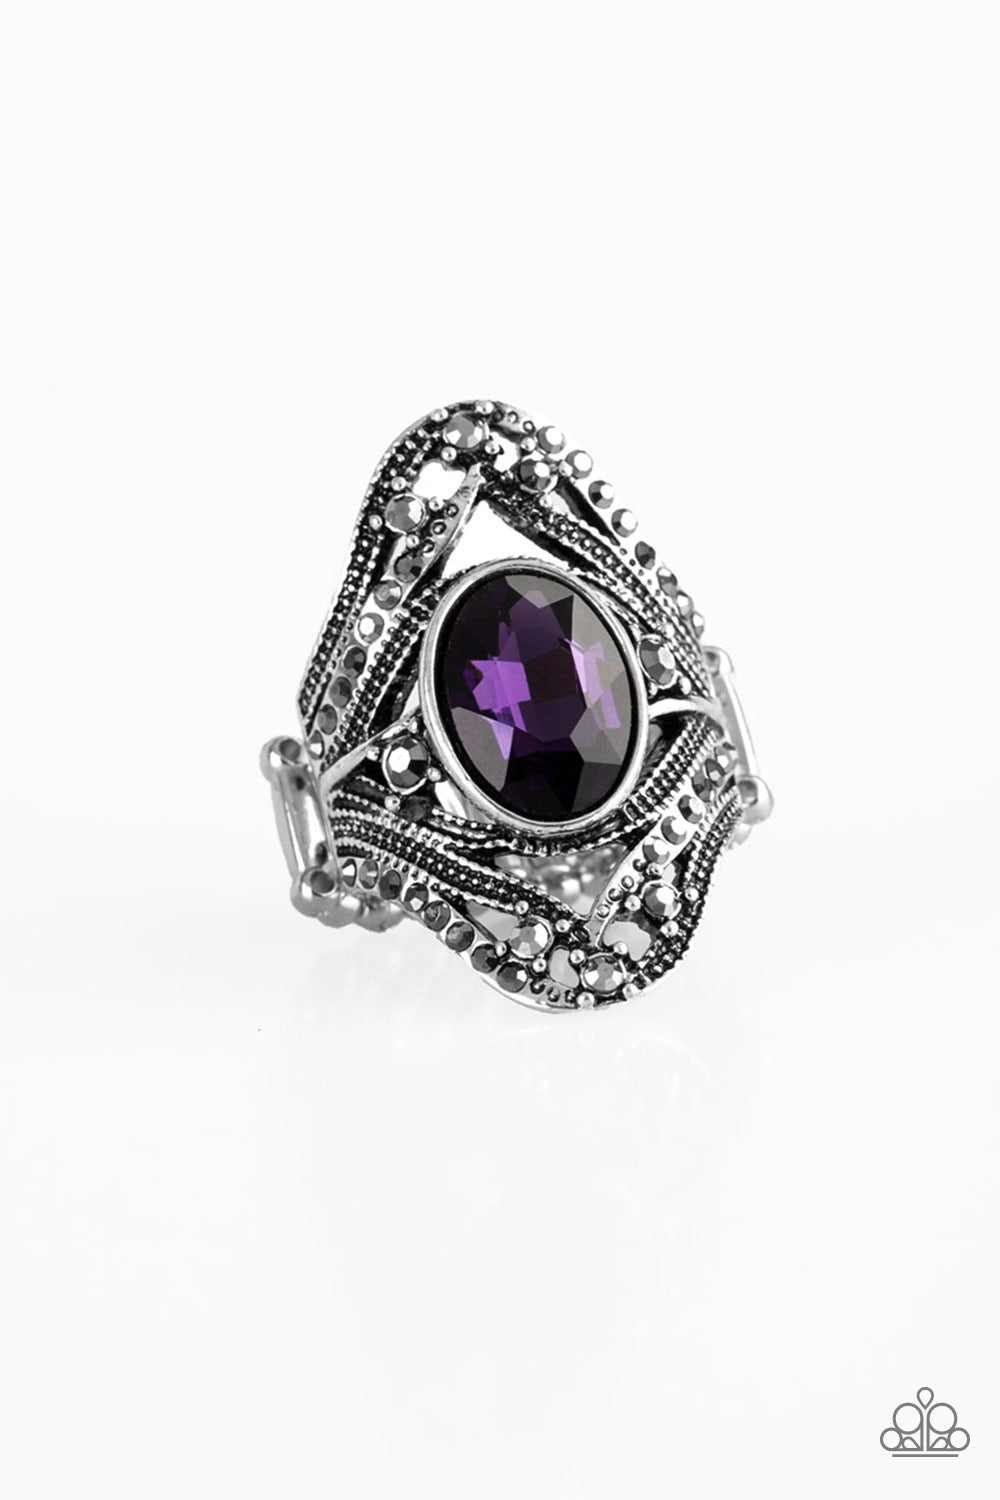 five-dollar-jewelry-red-carpet-rebel-purple-ring-paparazzi-accessories